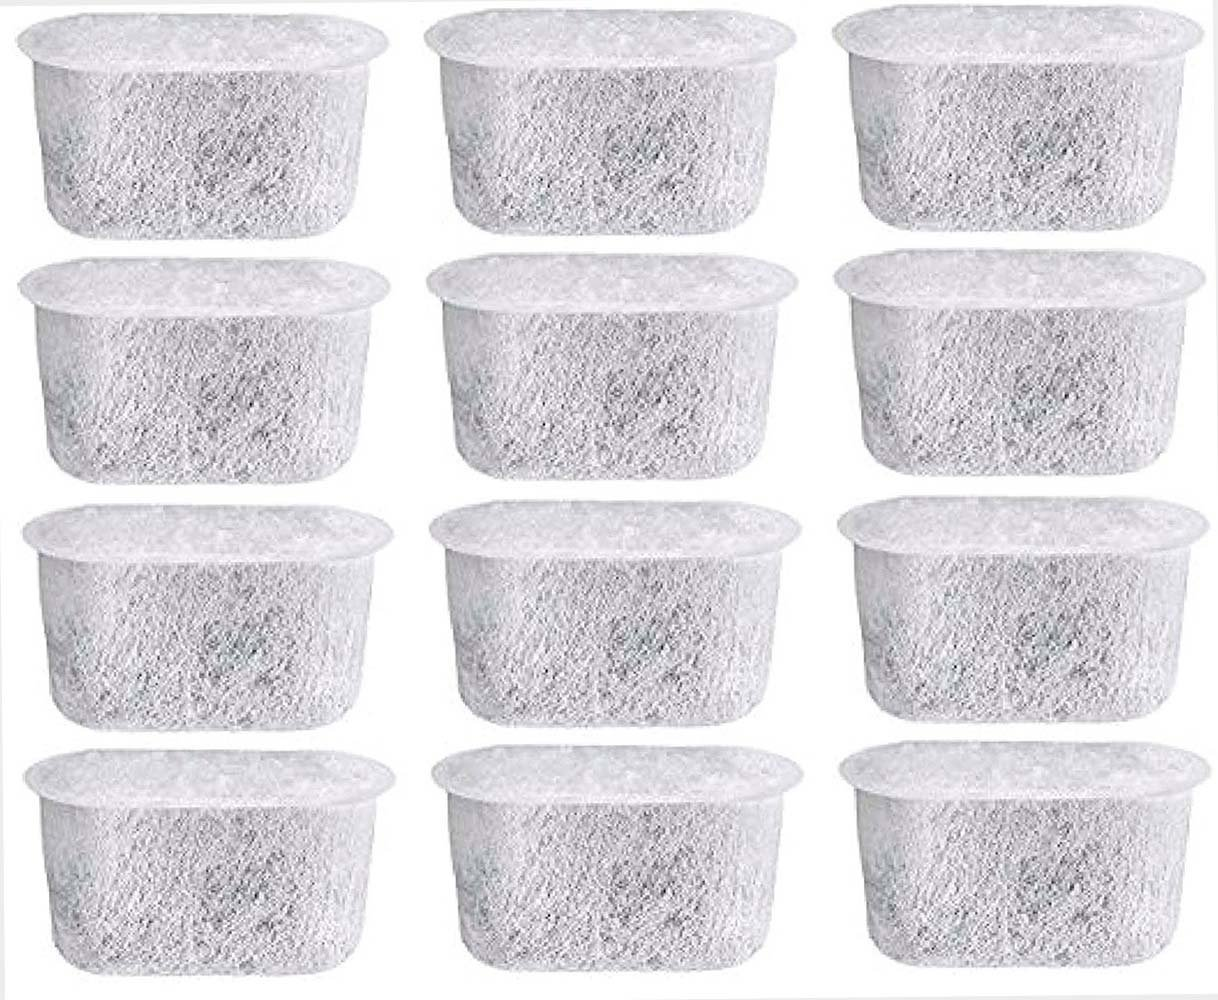 big_store Charcoal Water Filter DCCF-12 Replacement for Cuisinart Coffee Makers 12 Pack Specifically Designed all Cuisinart Coffeemakers that Require Water Filters Interfere Taste Quality & ebook by